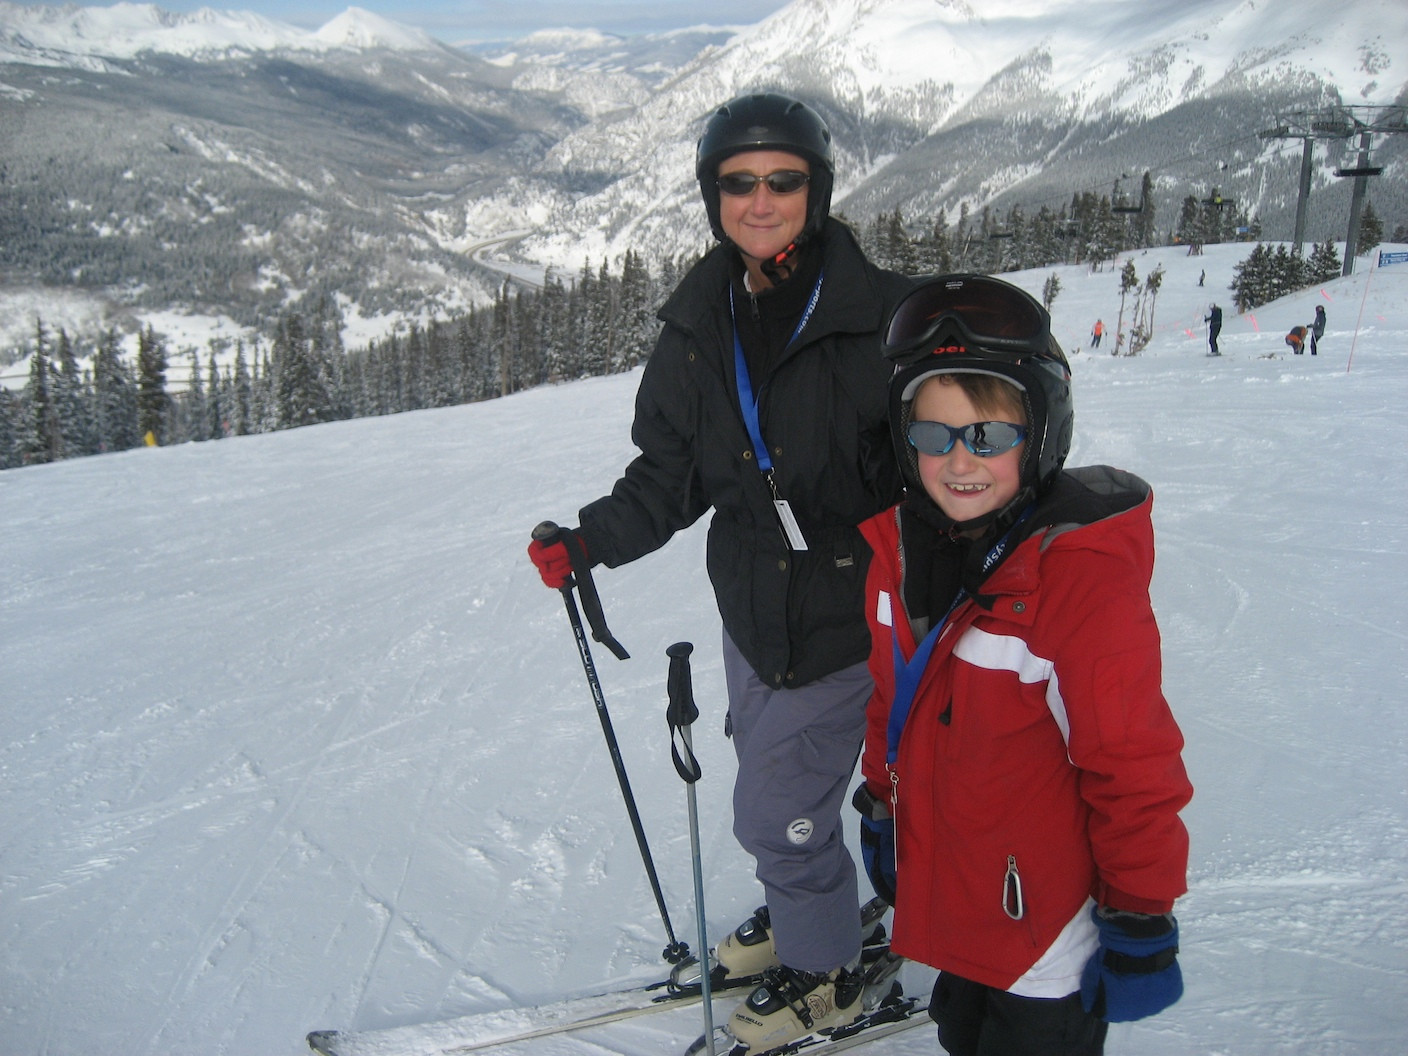 Skiing with my son!